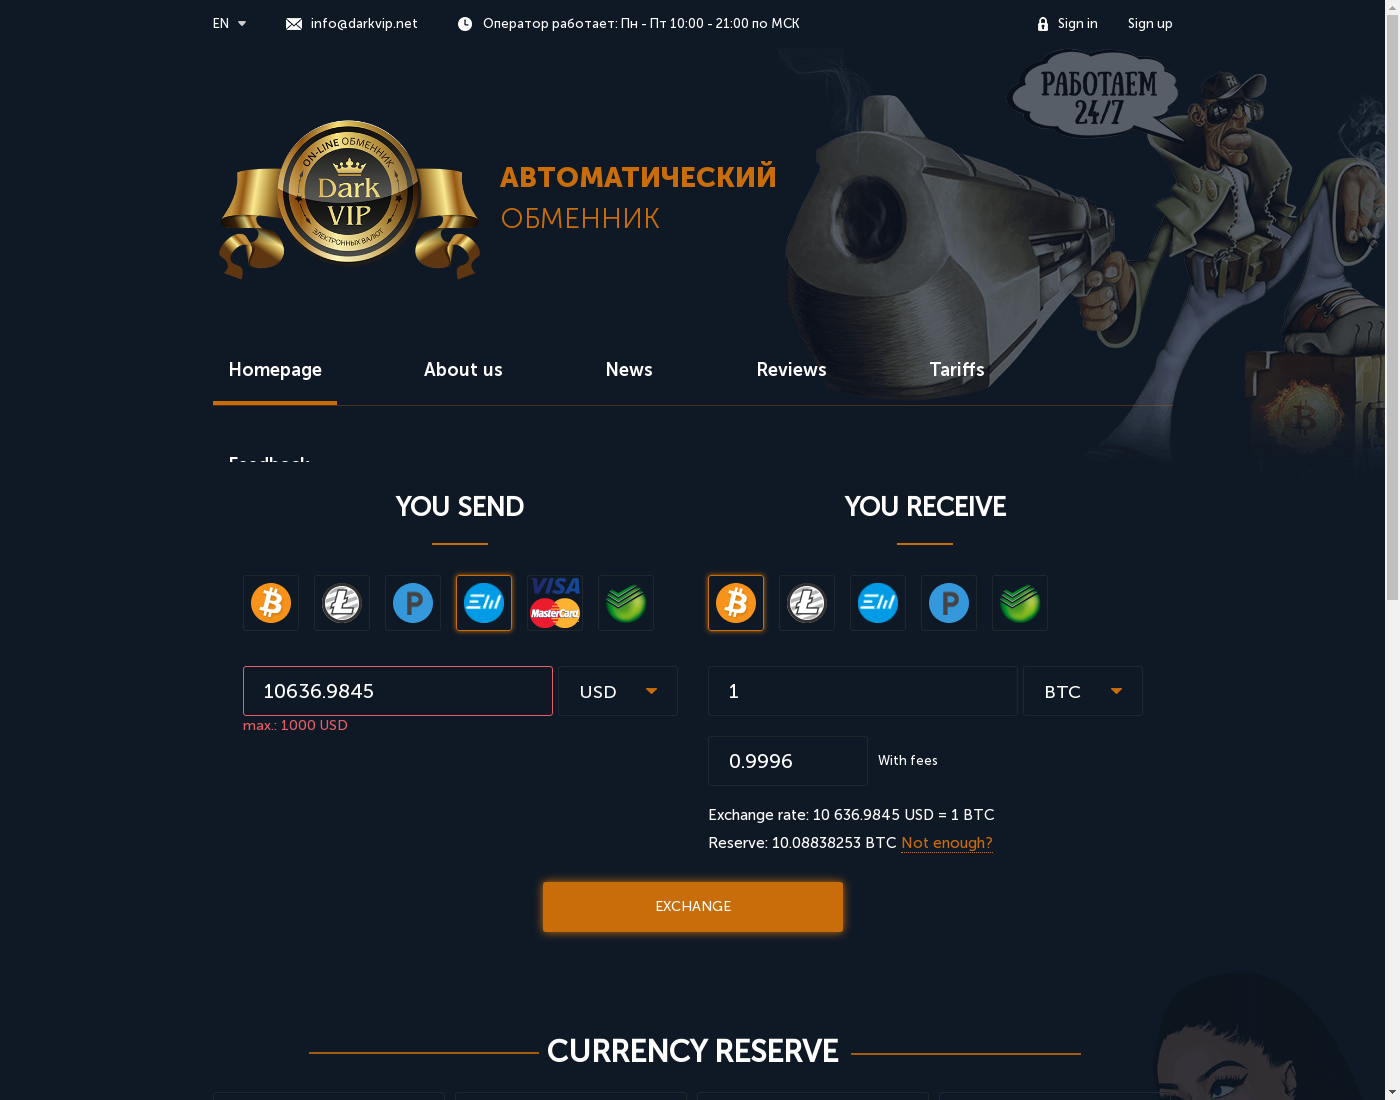 darkvip user interface: the home page in English